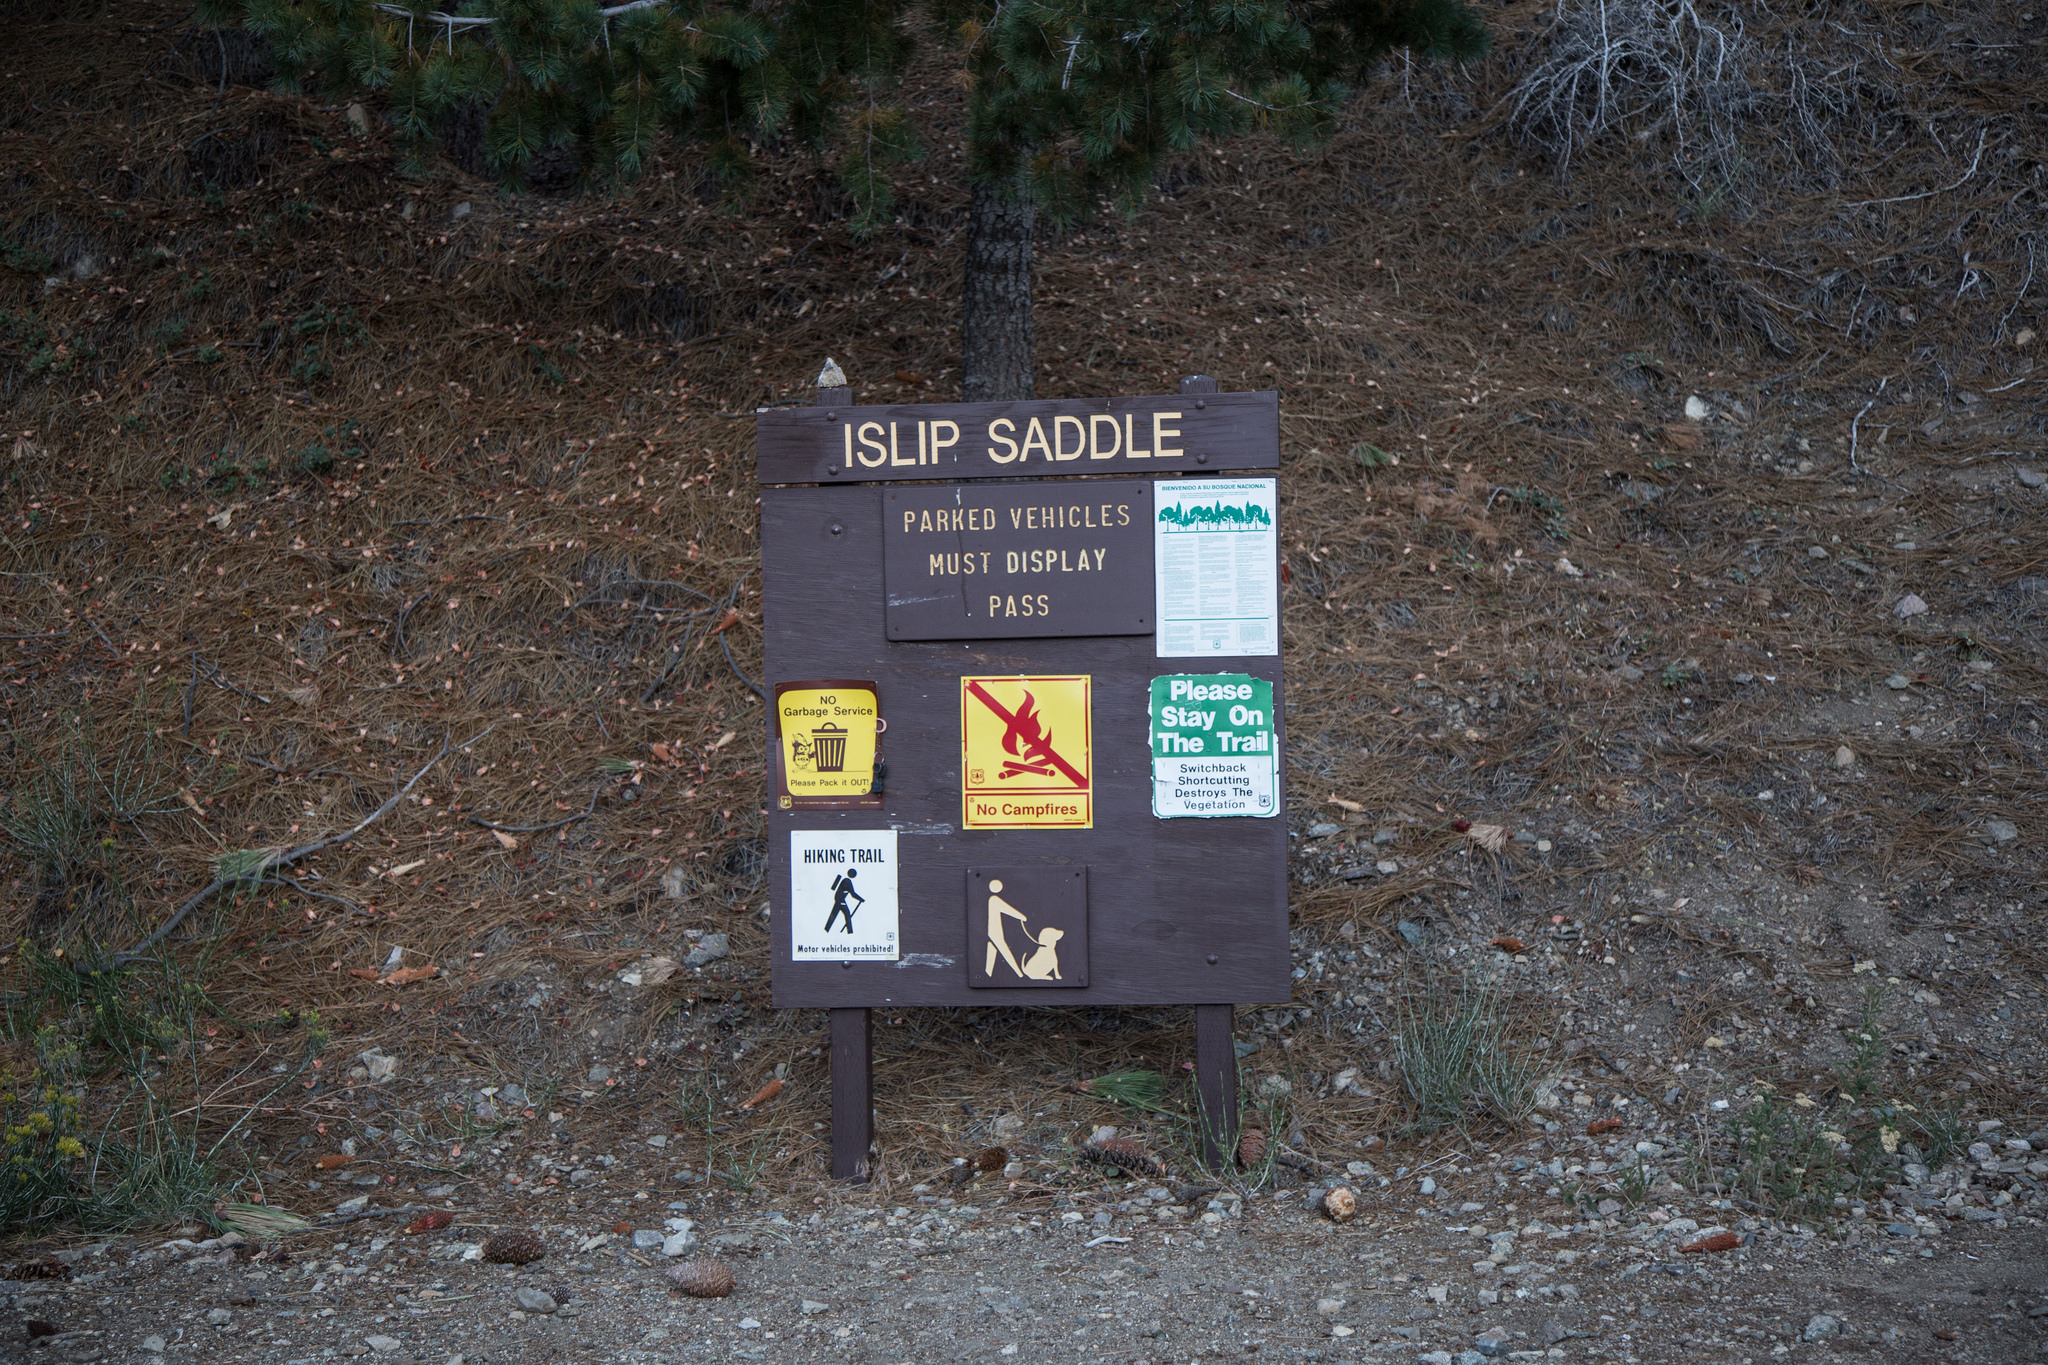 We parked here at Islip Saddle. The trailhead to Mt. Islip peak is actually on the south side of Angeles Crest.